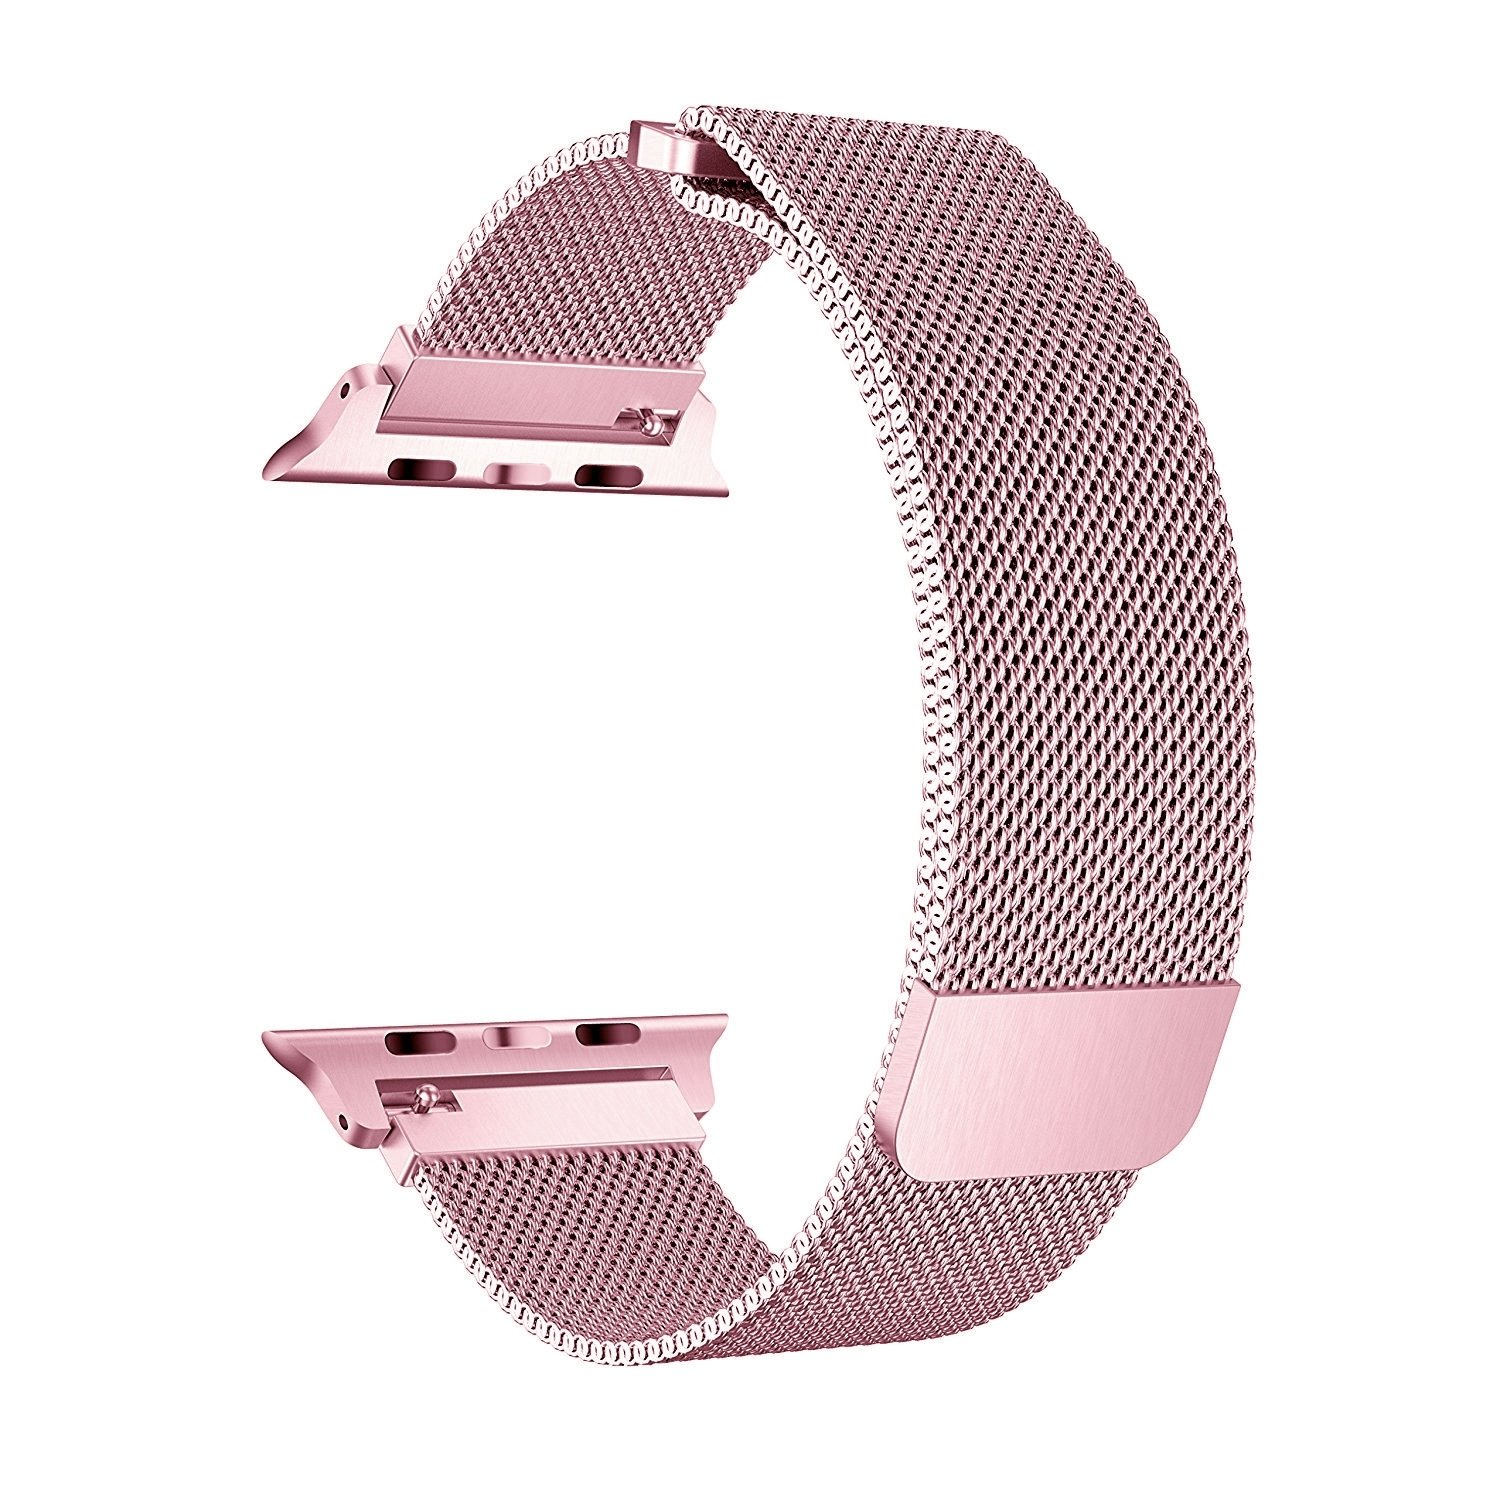 CTYBB for Apple Watch Band 38mm, Milanese Loop Stainless Steel Magnetic Lock for Apple Watch Series 3, Series 2, Series 1, Sport & Edition(Rose Gold)